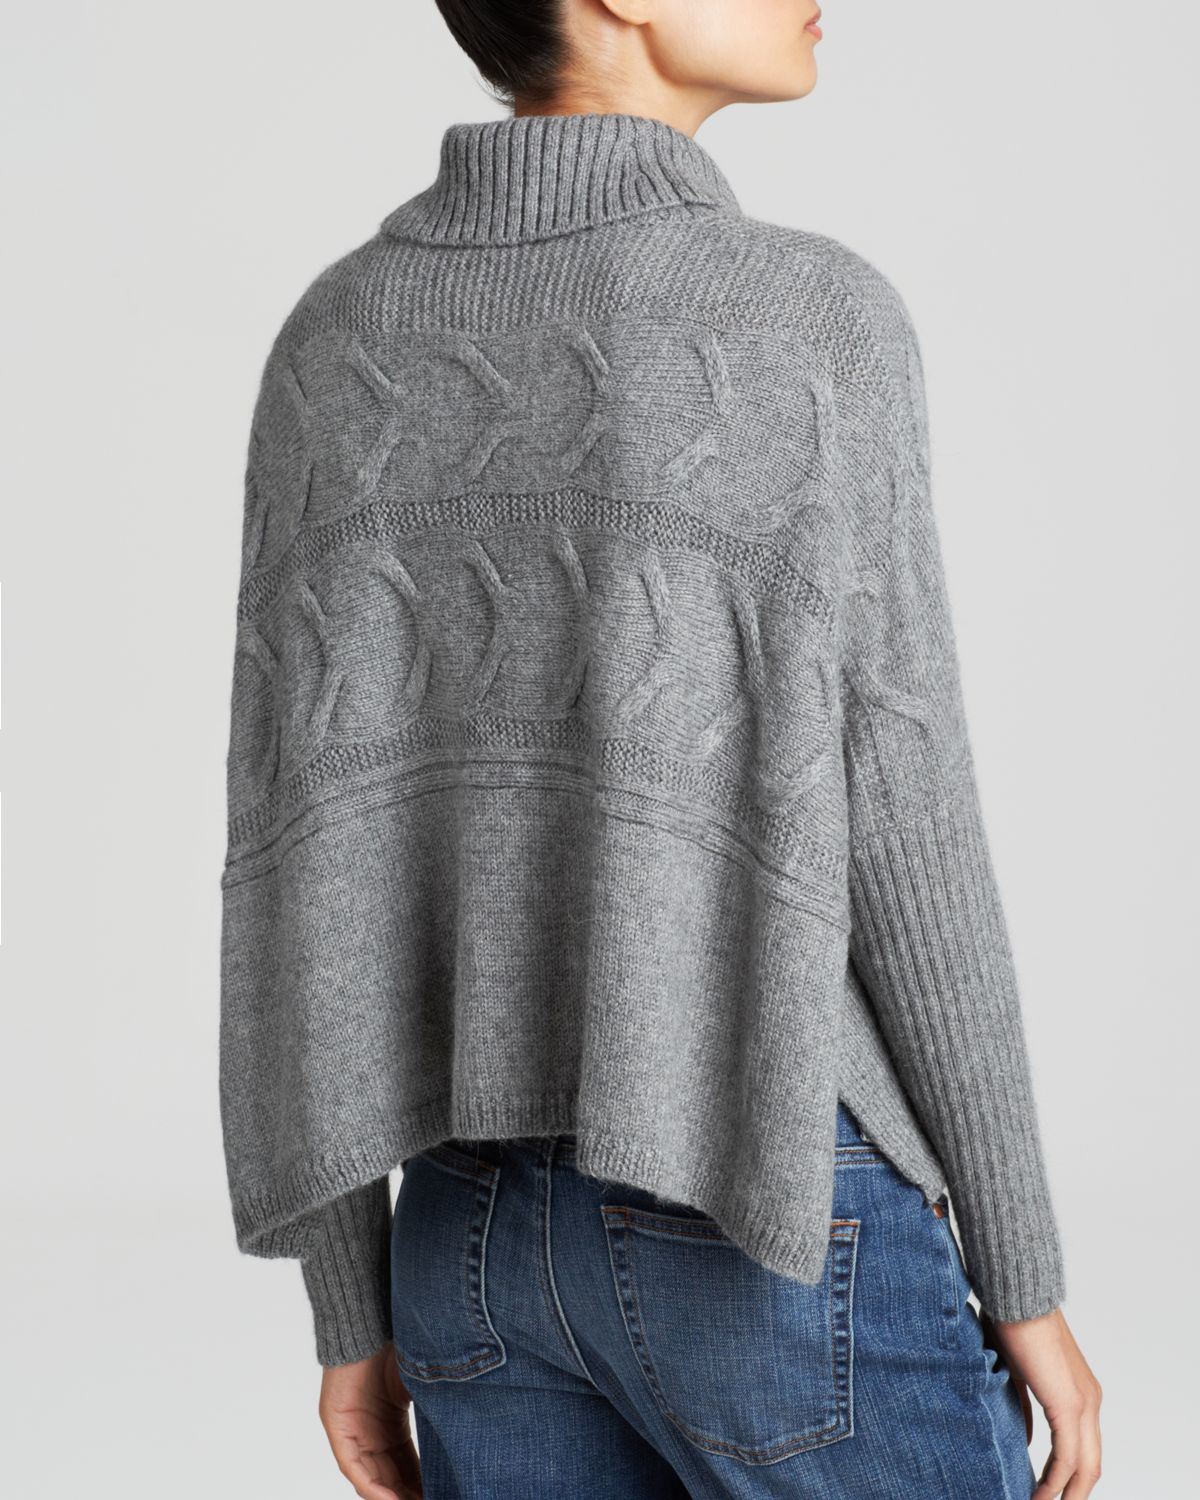 Eileen fisher Cable Knit Turtleneck Sweater in Gray | Lyst